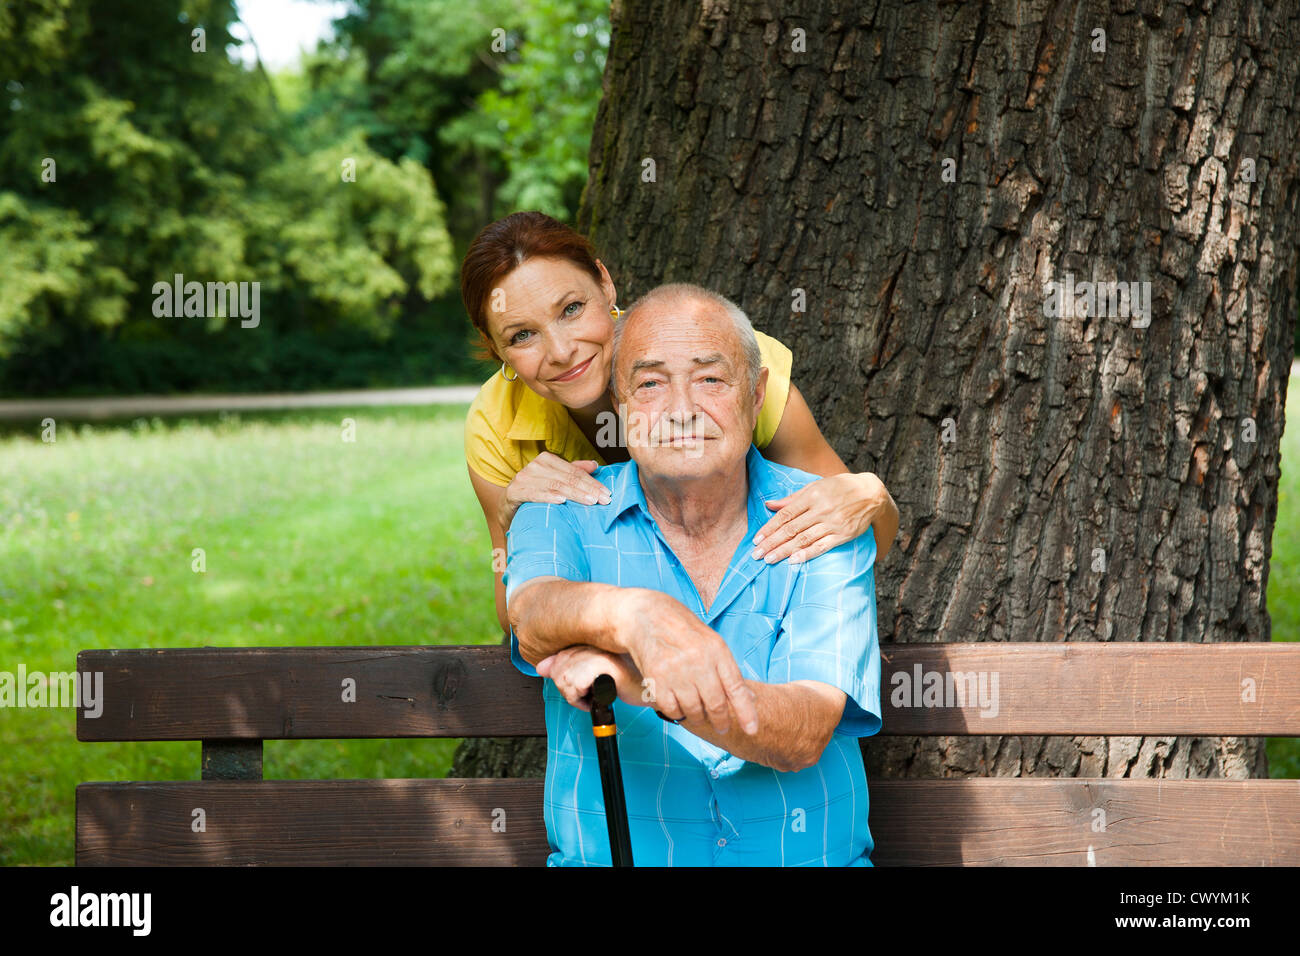 Woman with old man on park bench - Stock Image